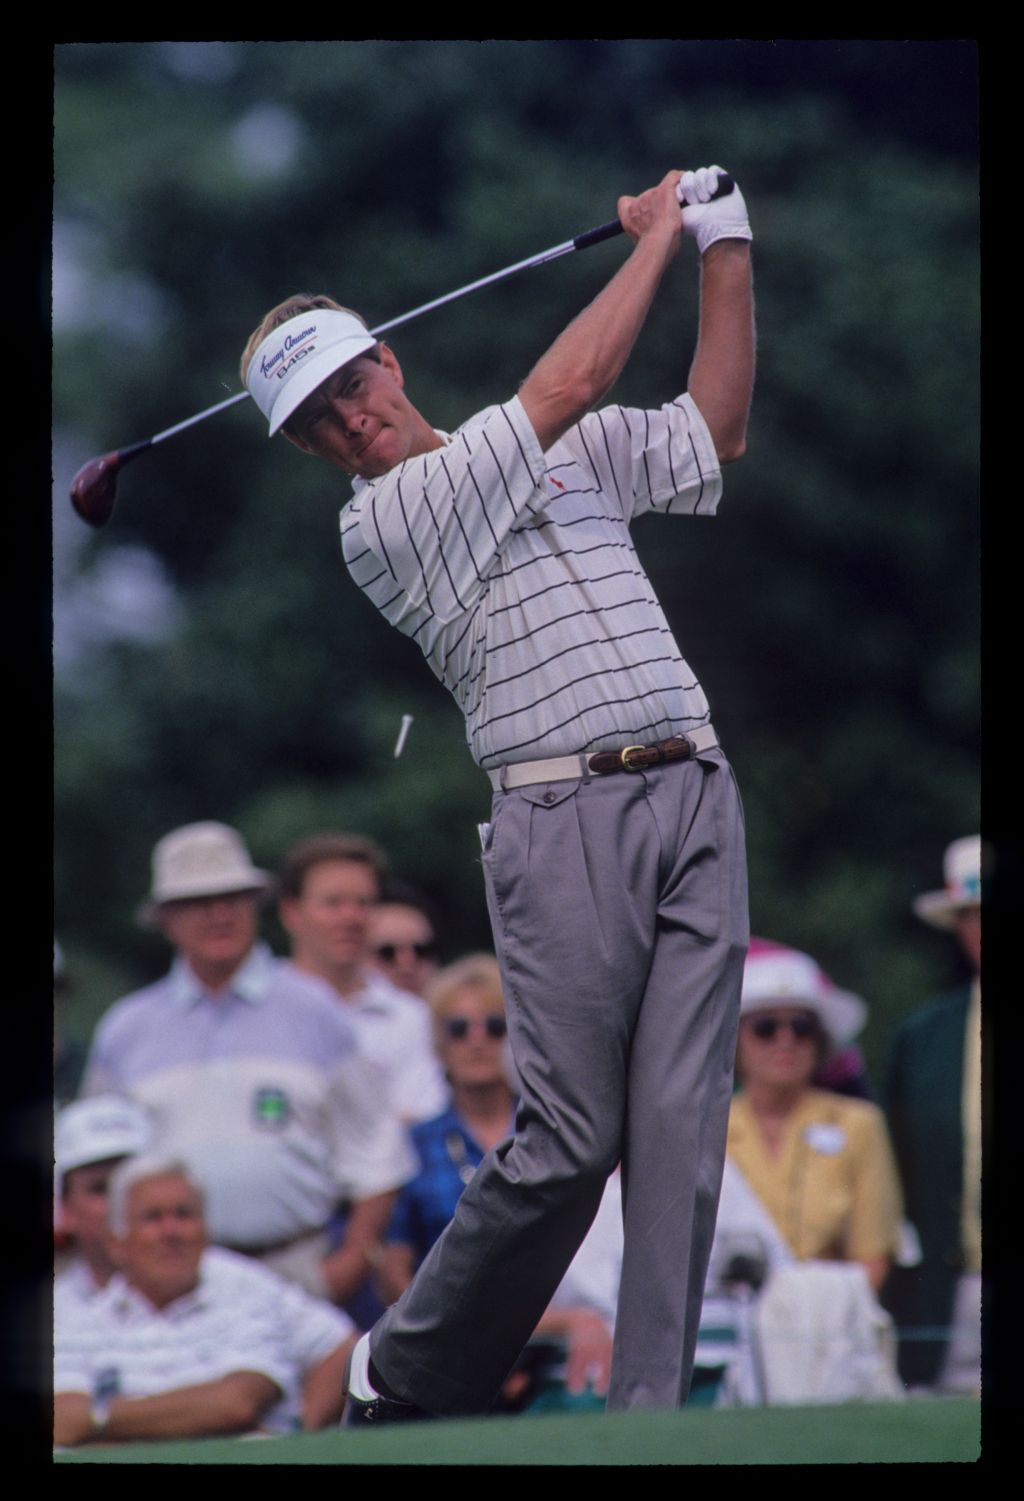 Davis Love III following through on the tee during the 1992 Masters